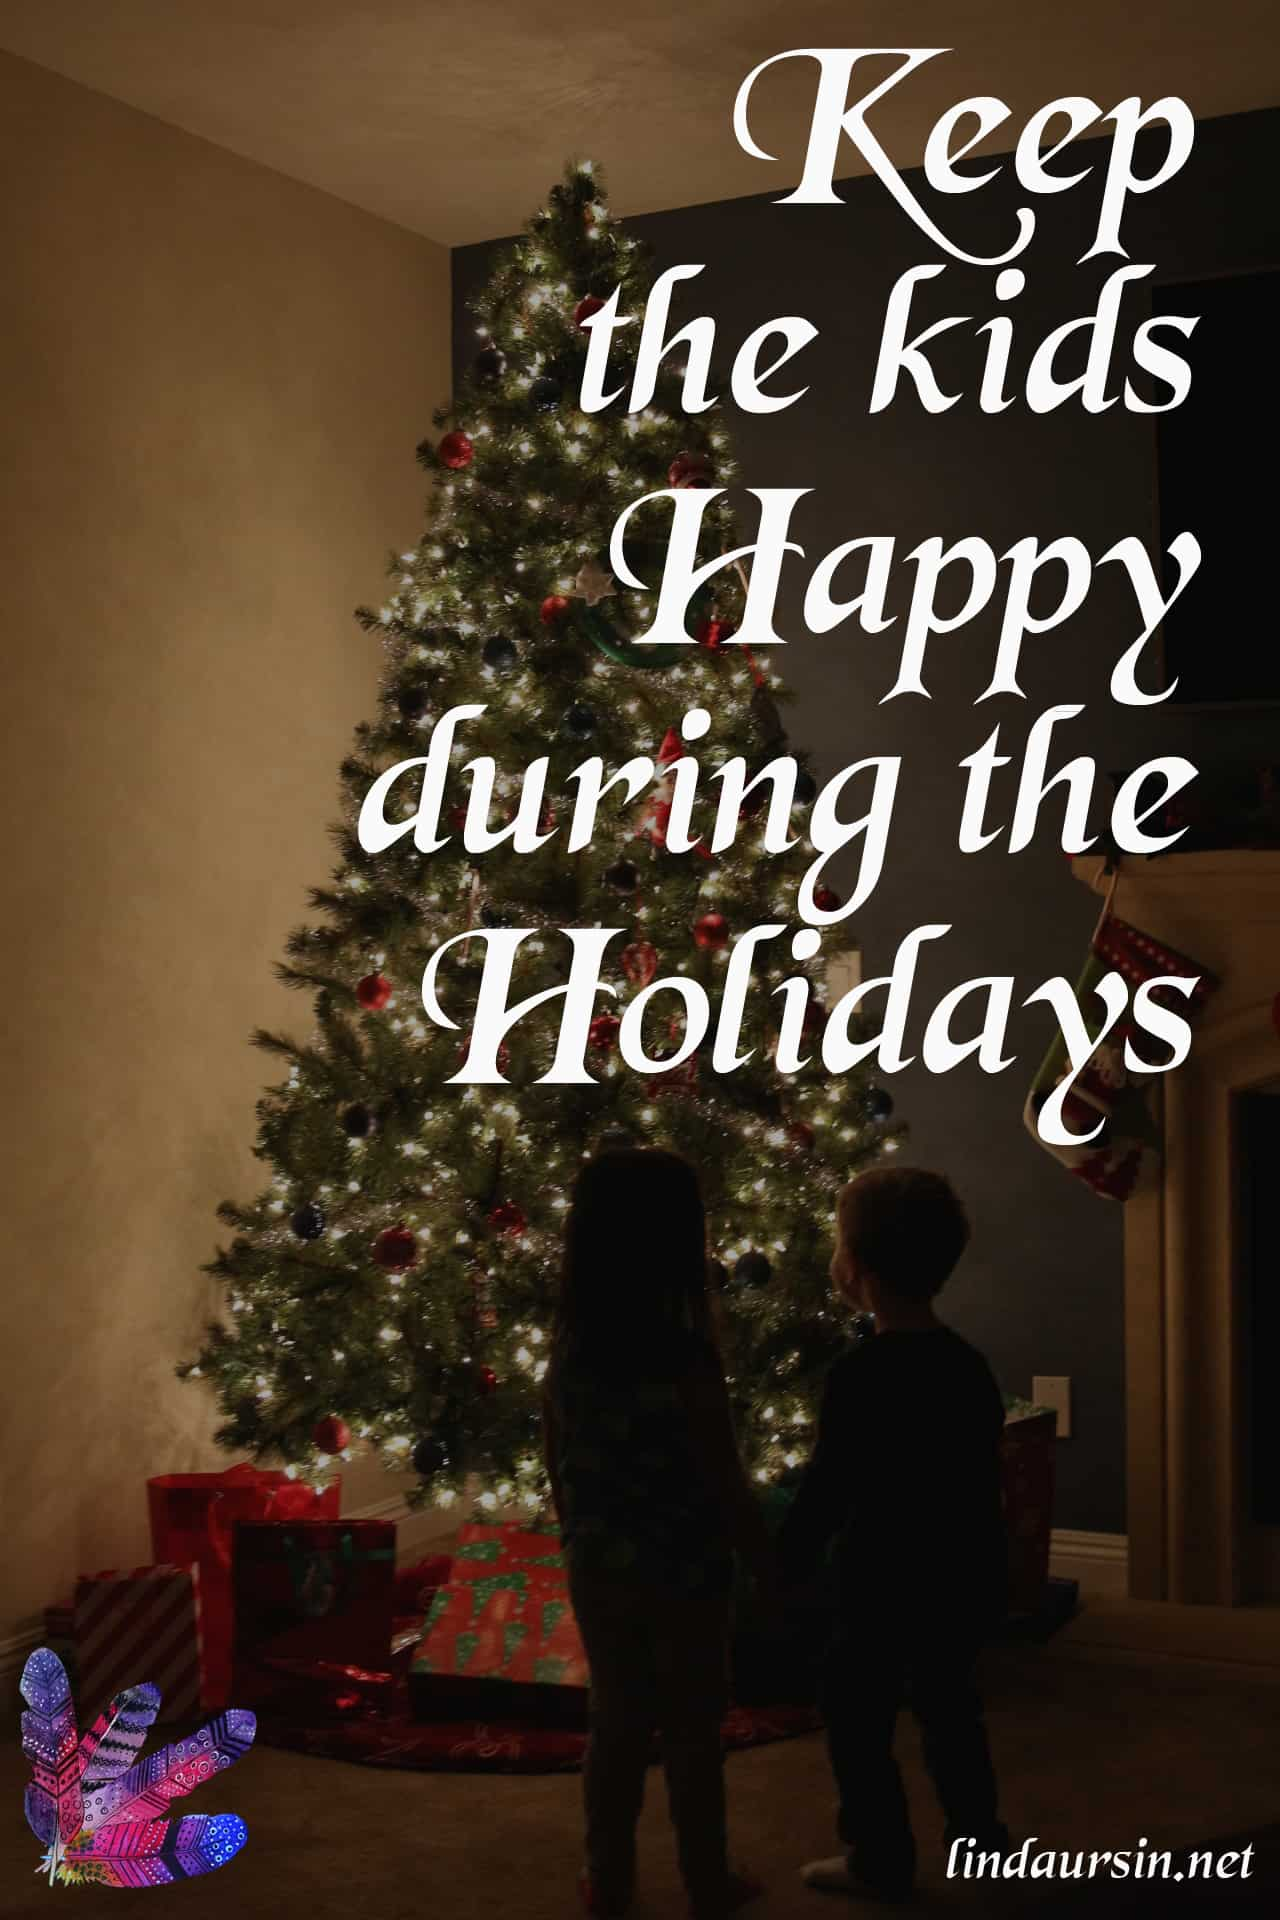 Keep the kids happy during the holidays